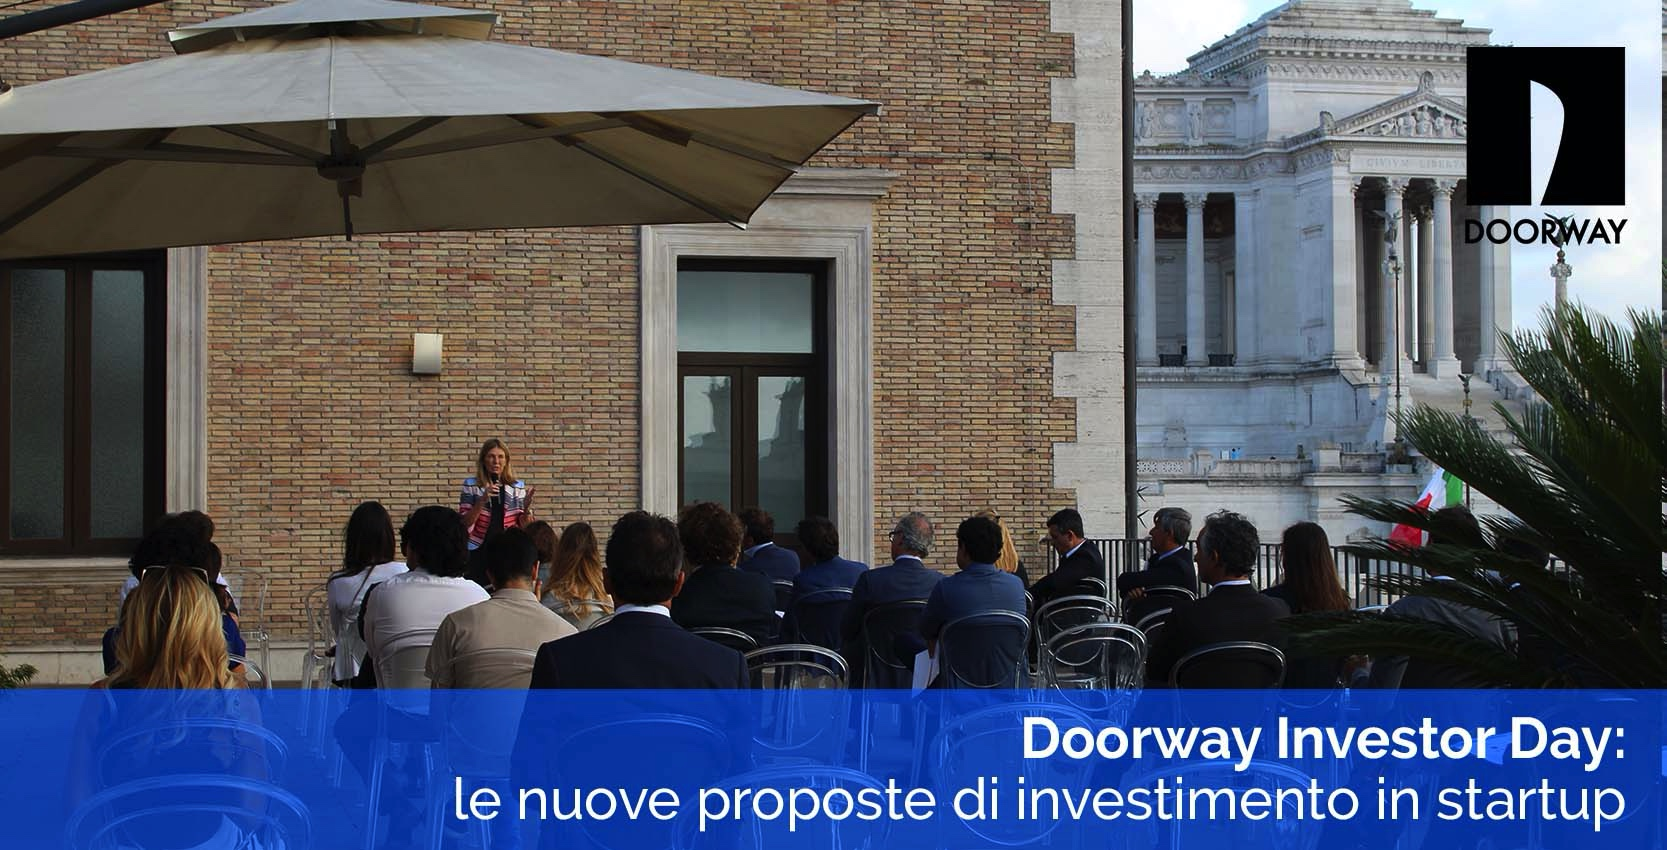 doorway investor day: le nuove proposte di investimento in startup